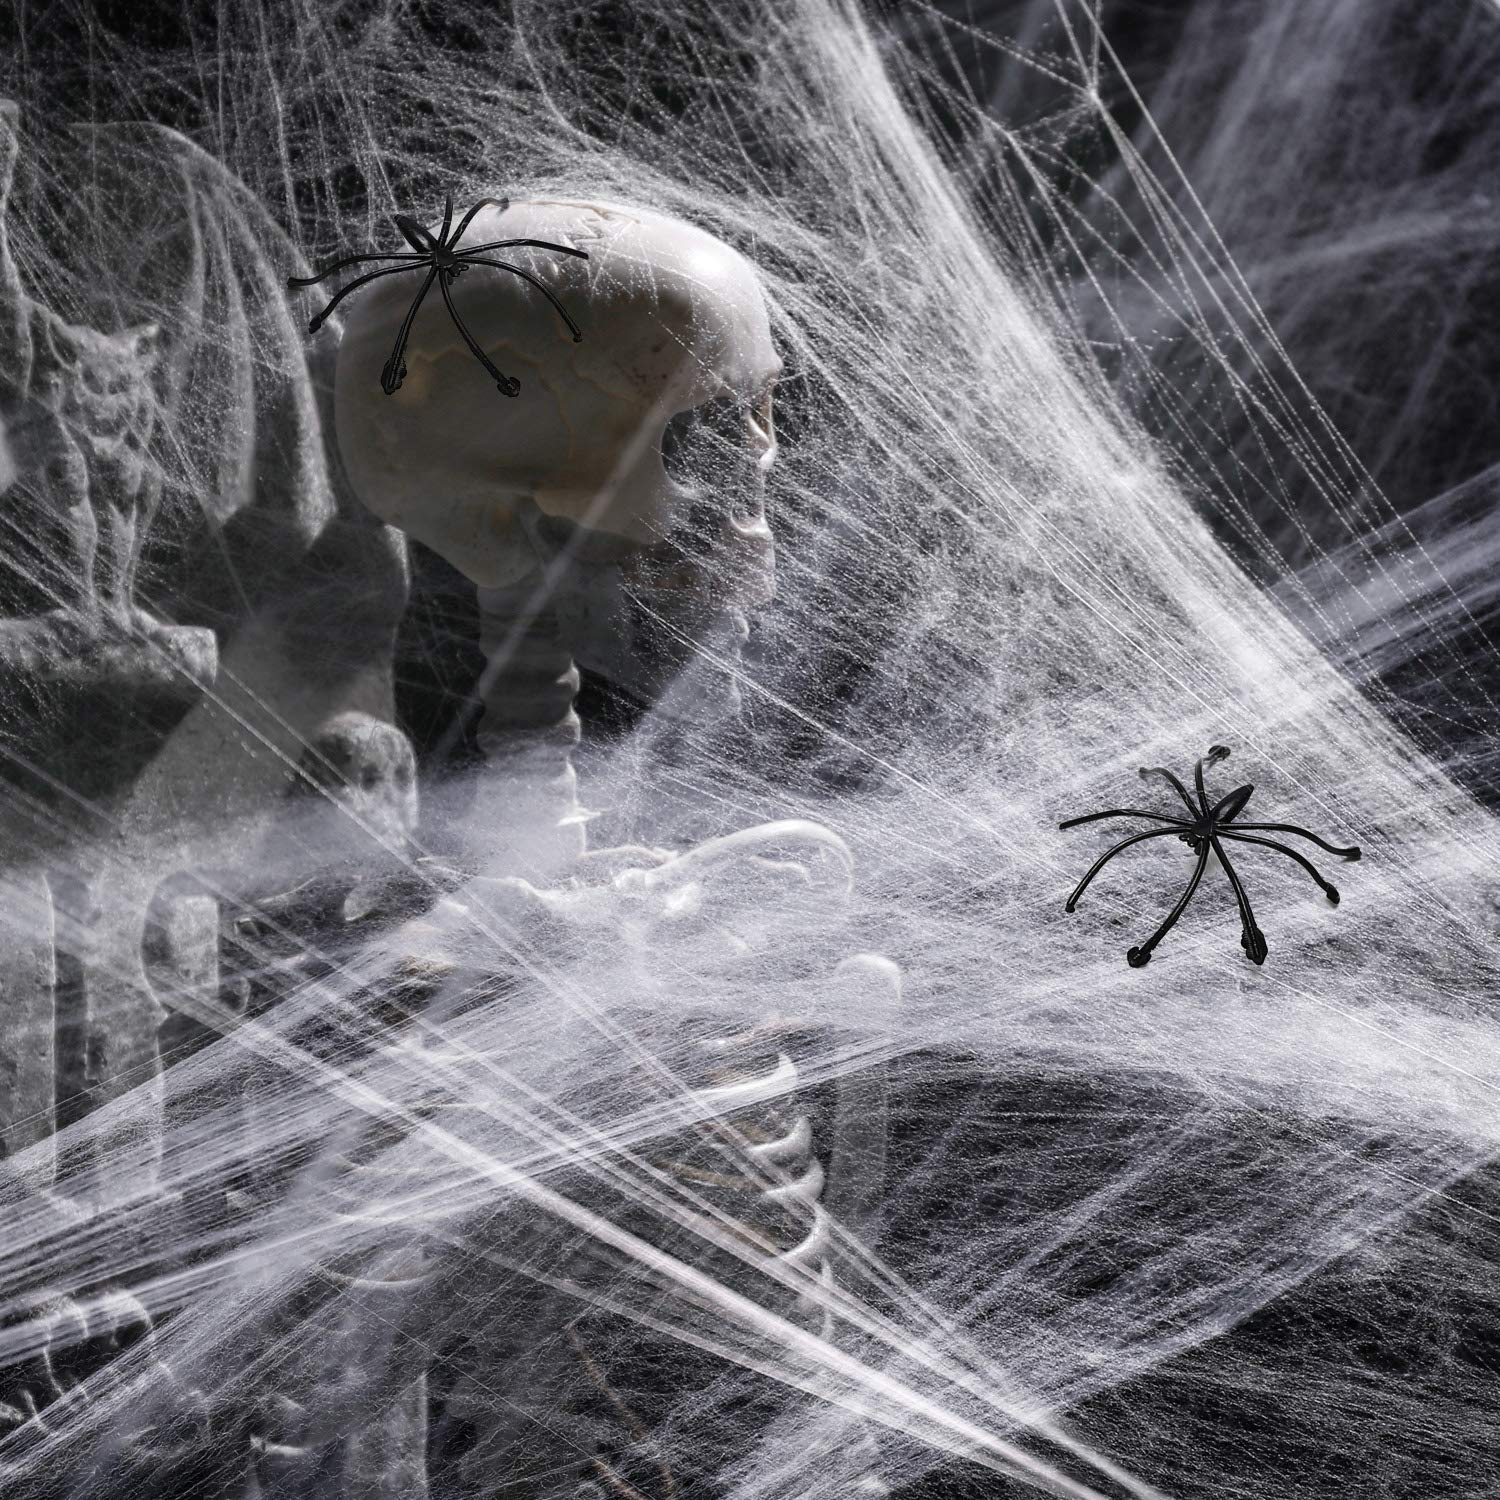 Halloween Decorations Outdoor with 6.6 Ft Giant Spider Scary Hairy Spider 20 Black Plastic Spiders Props for Outside Indoor House Yard Halloween Decor Party Favor 3 Pack 400sqft Fake Spider Web